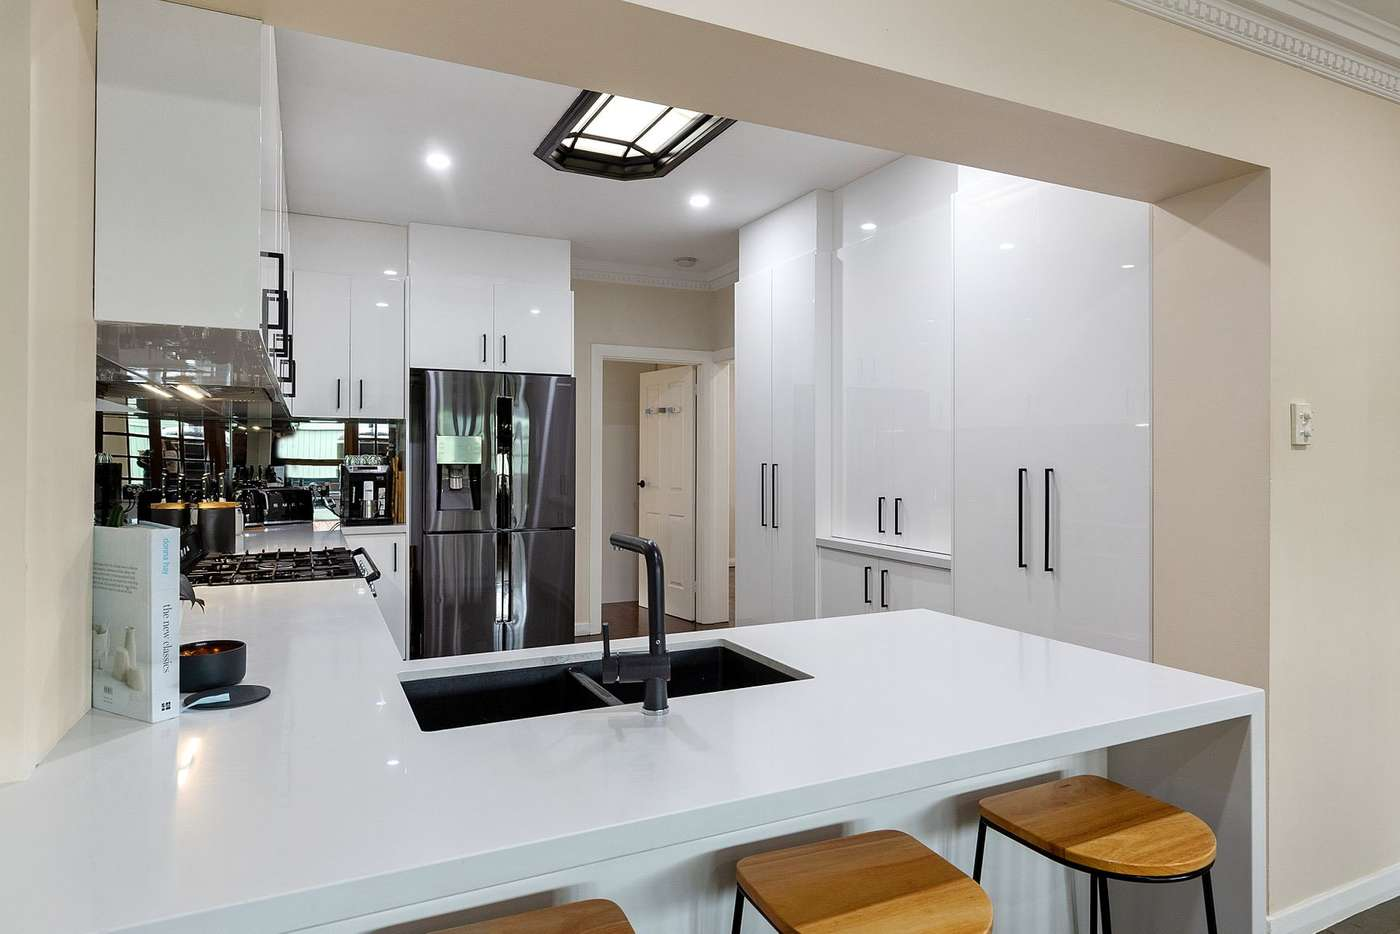 Fifth view of Homely house listing, 24 Glen Eira Street, Woodville South SA 5011